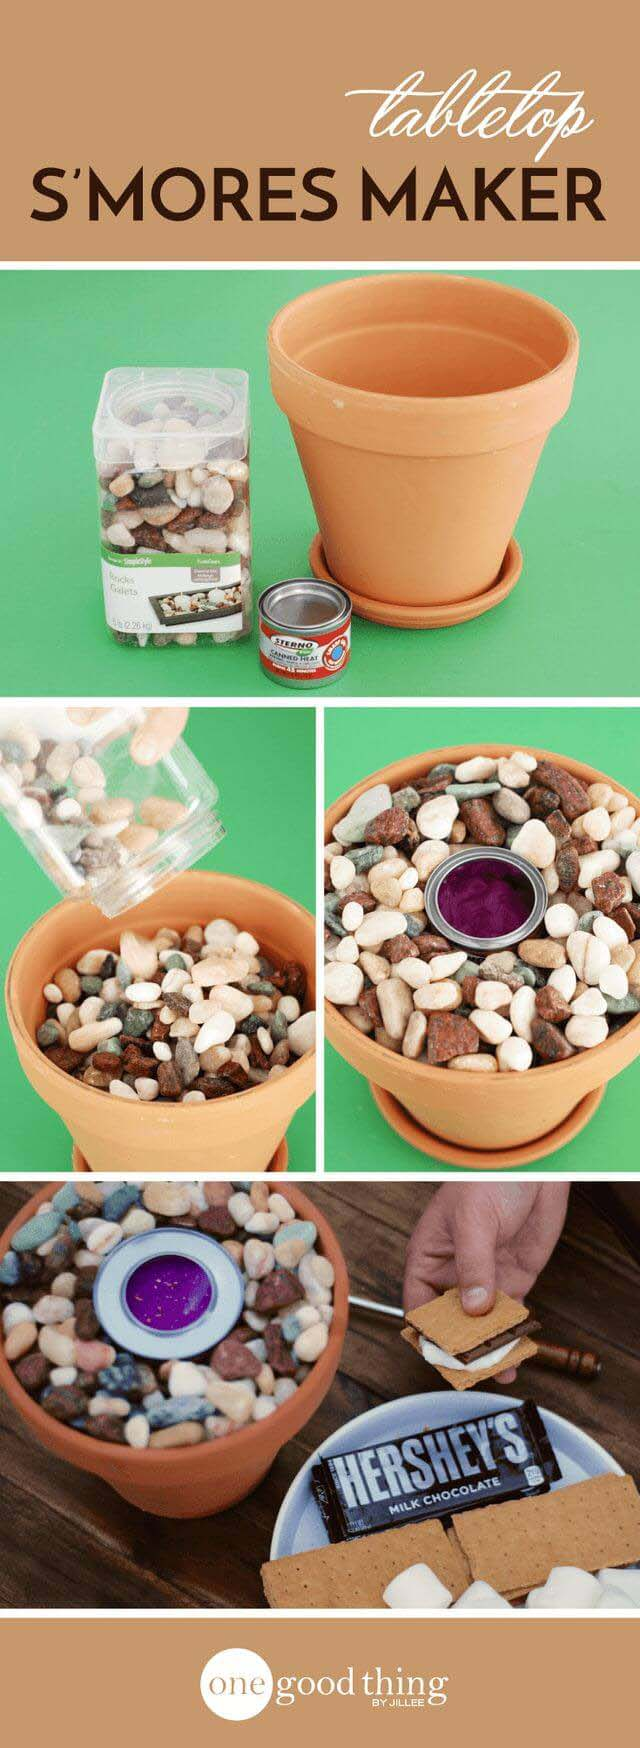 Make a Tiny Fire Pit for S'mores #flowerpot #clay #garden #decorhomeideas